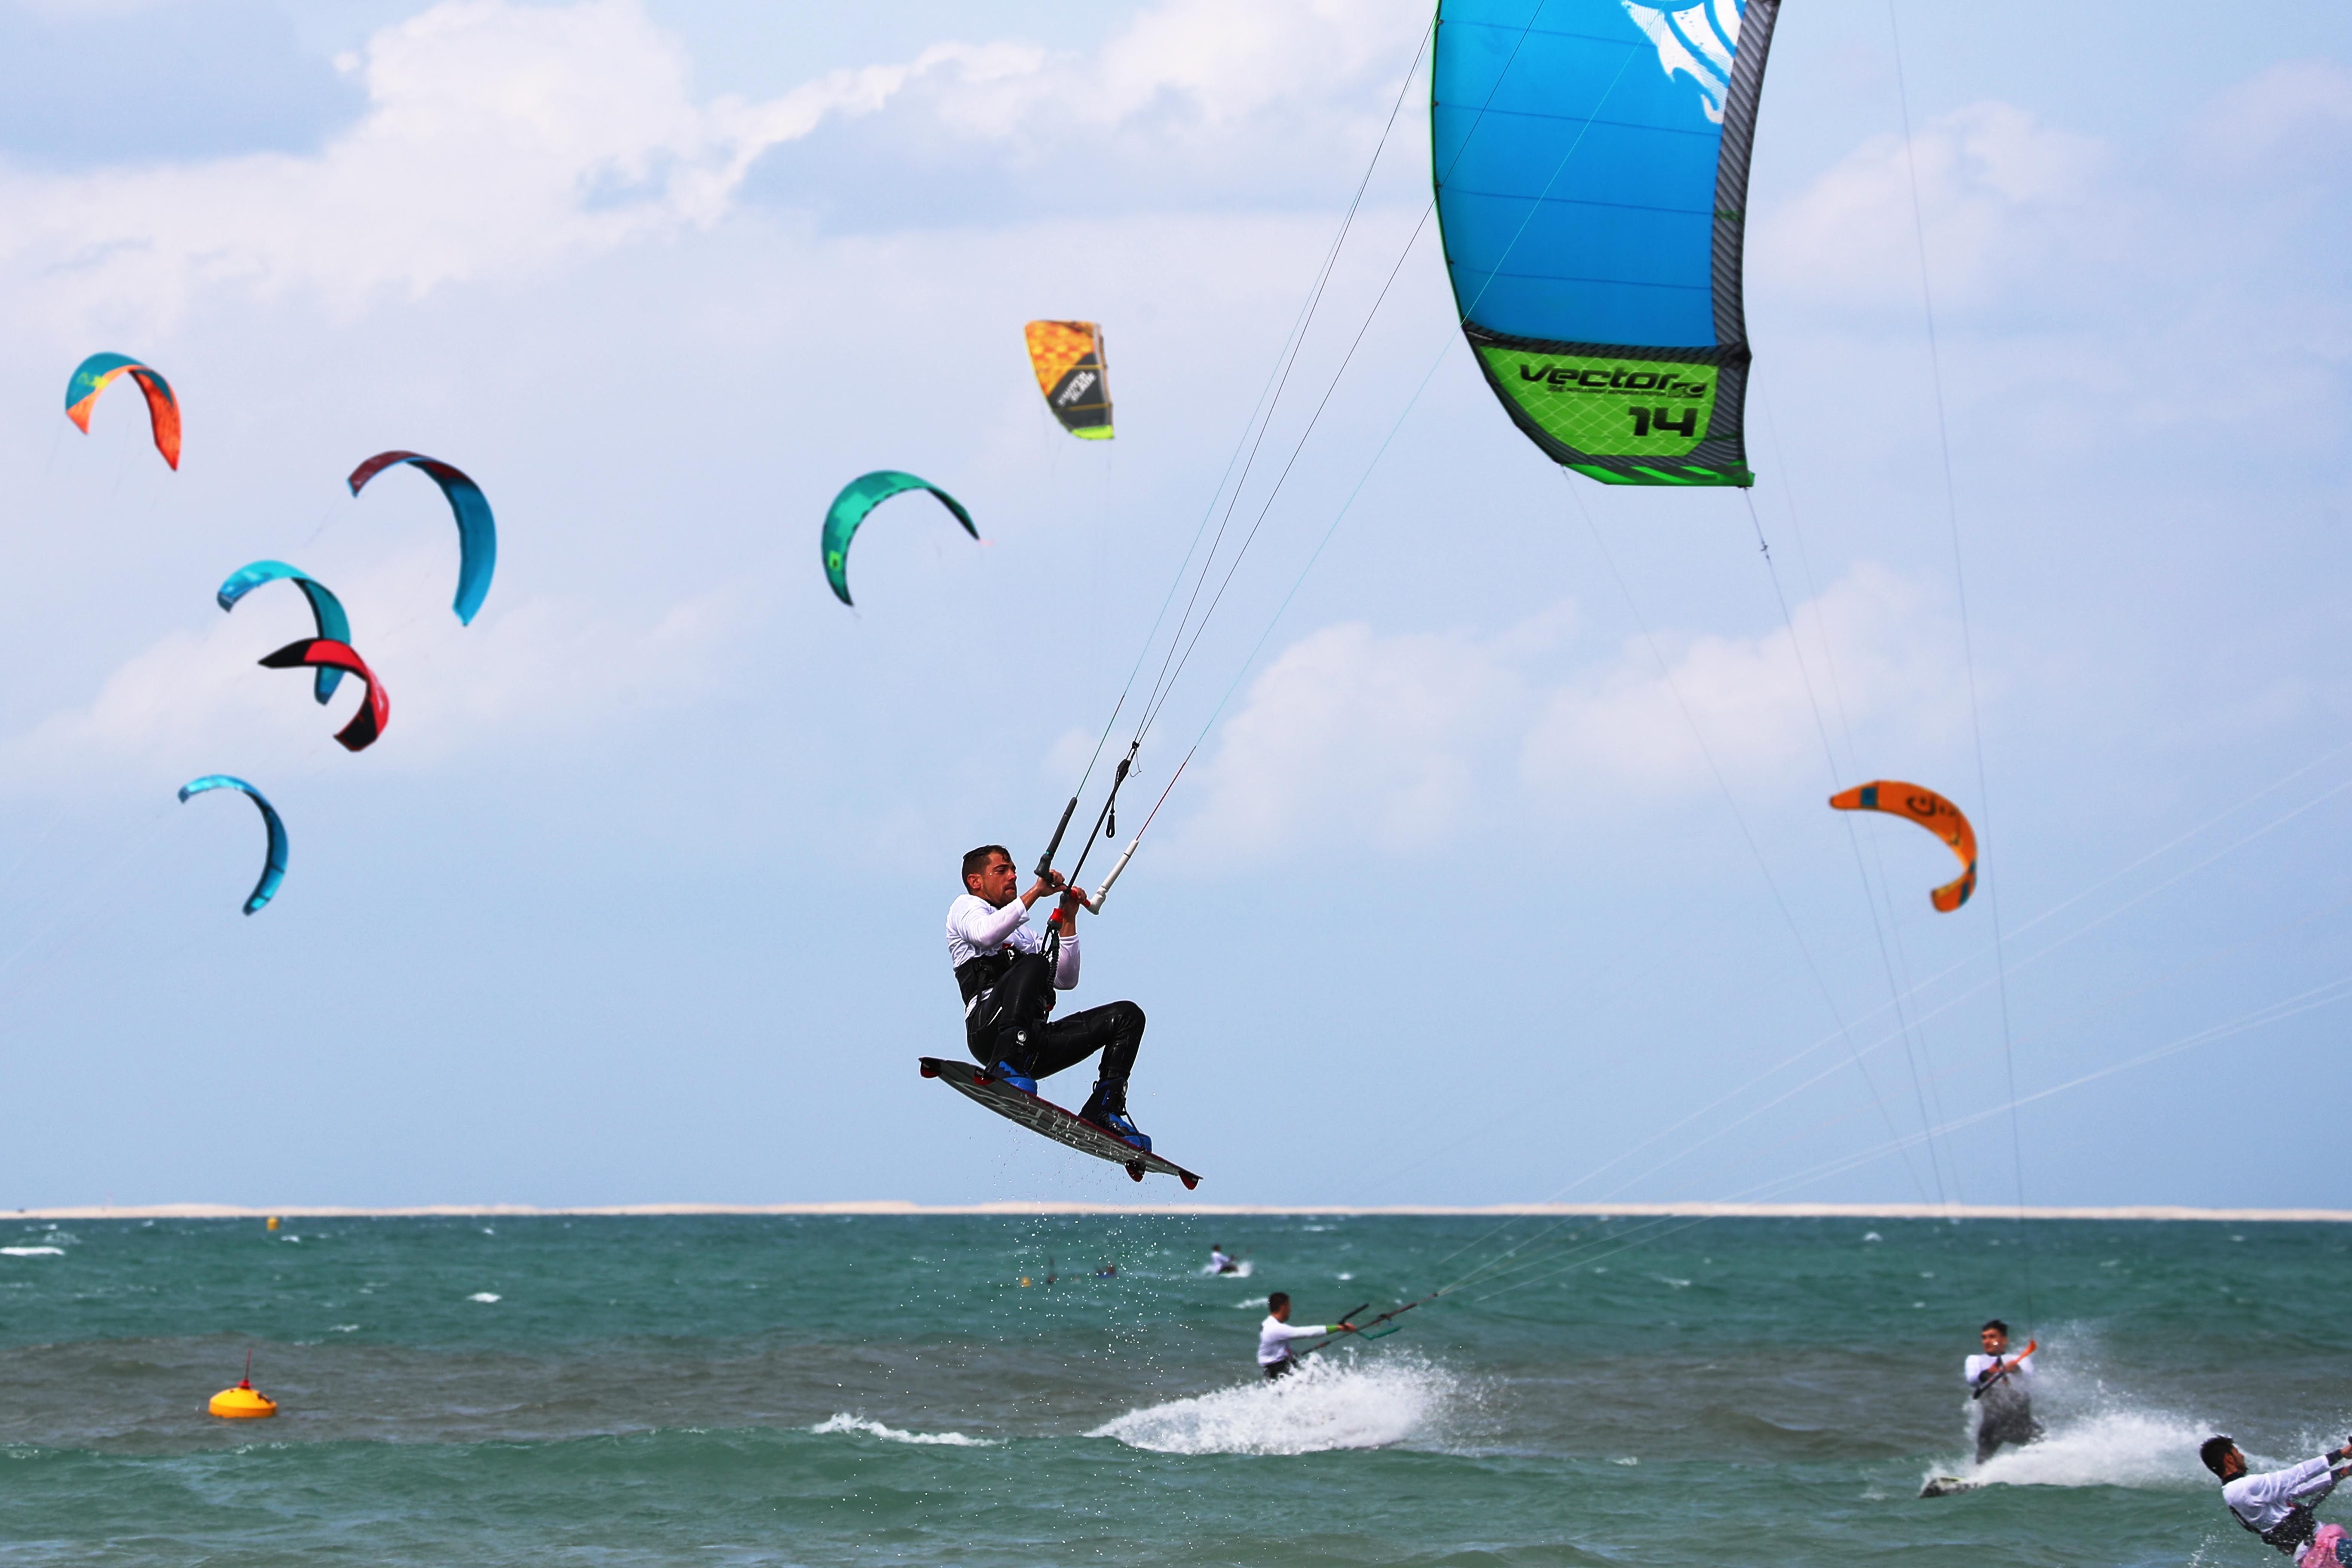 Nessnass Beach host the first ride of the Kitesurfing